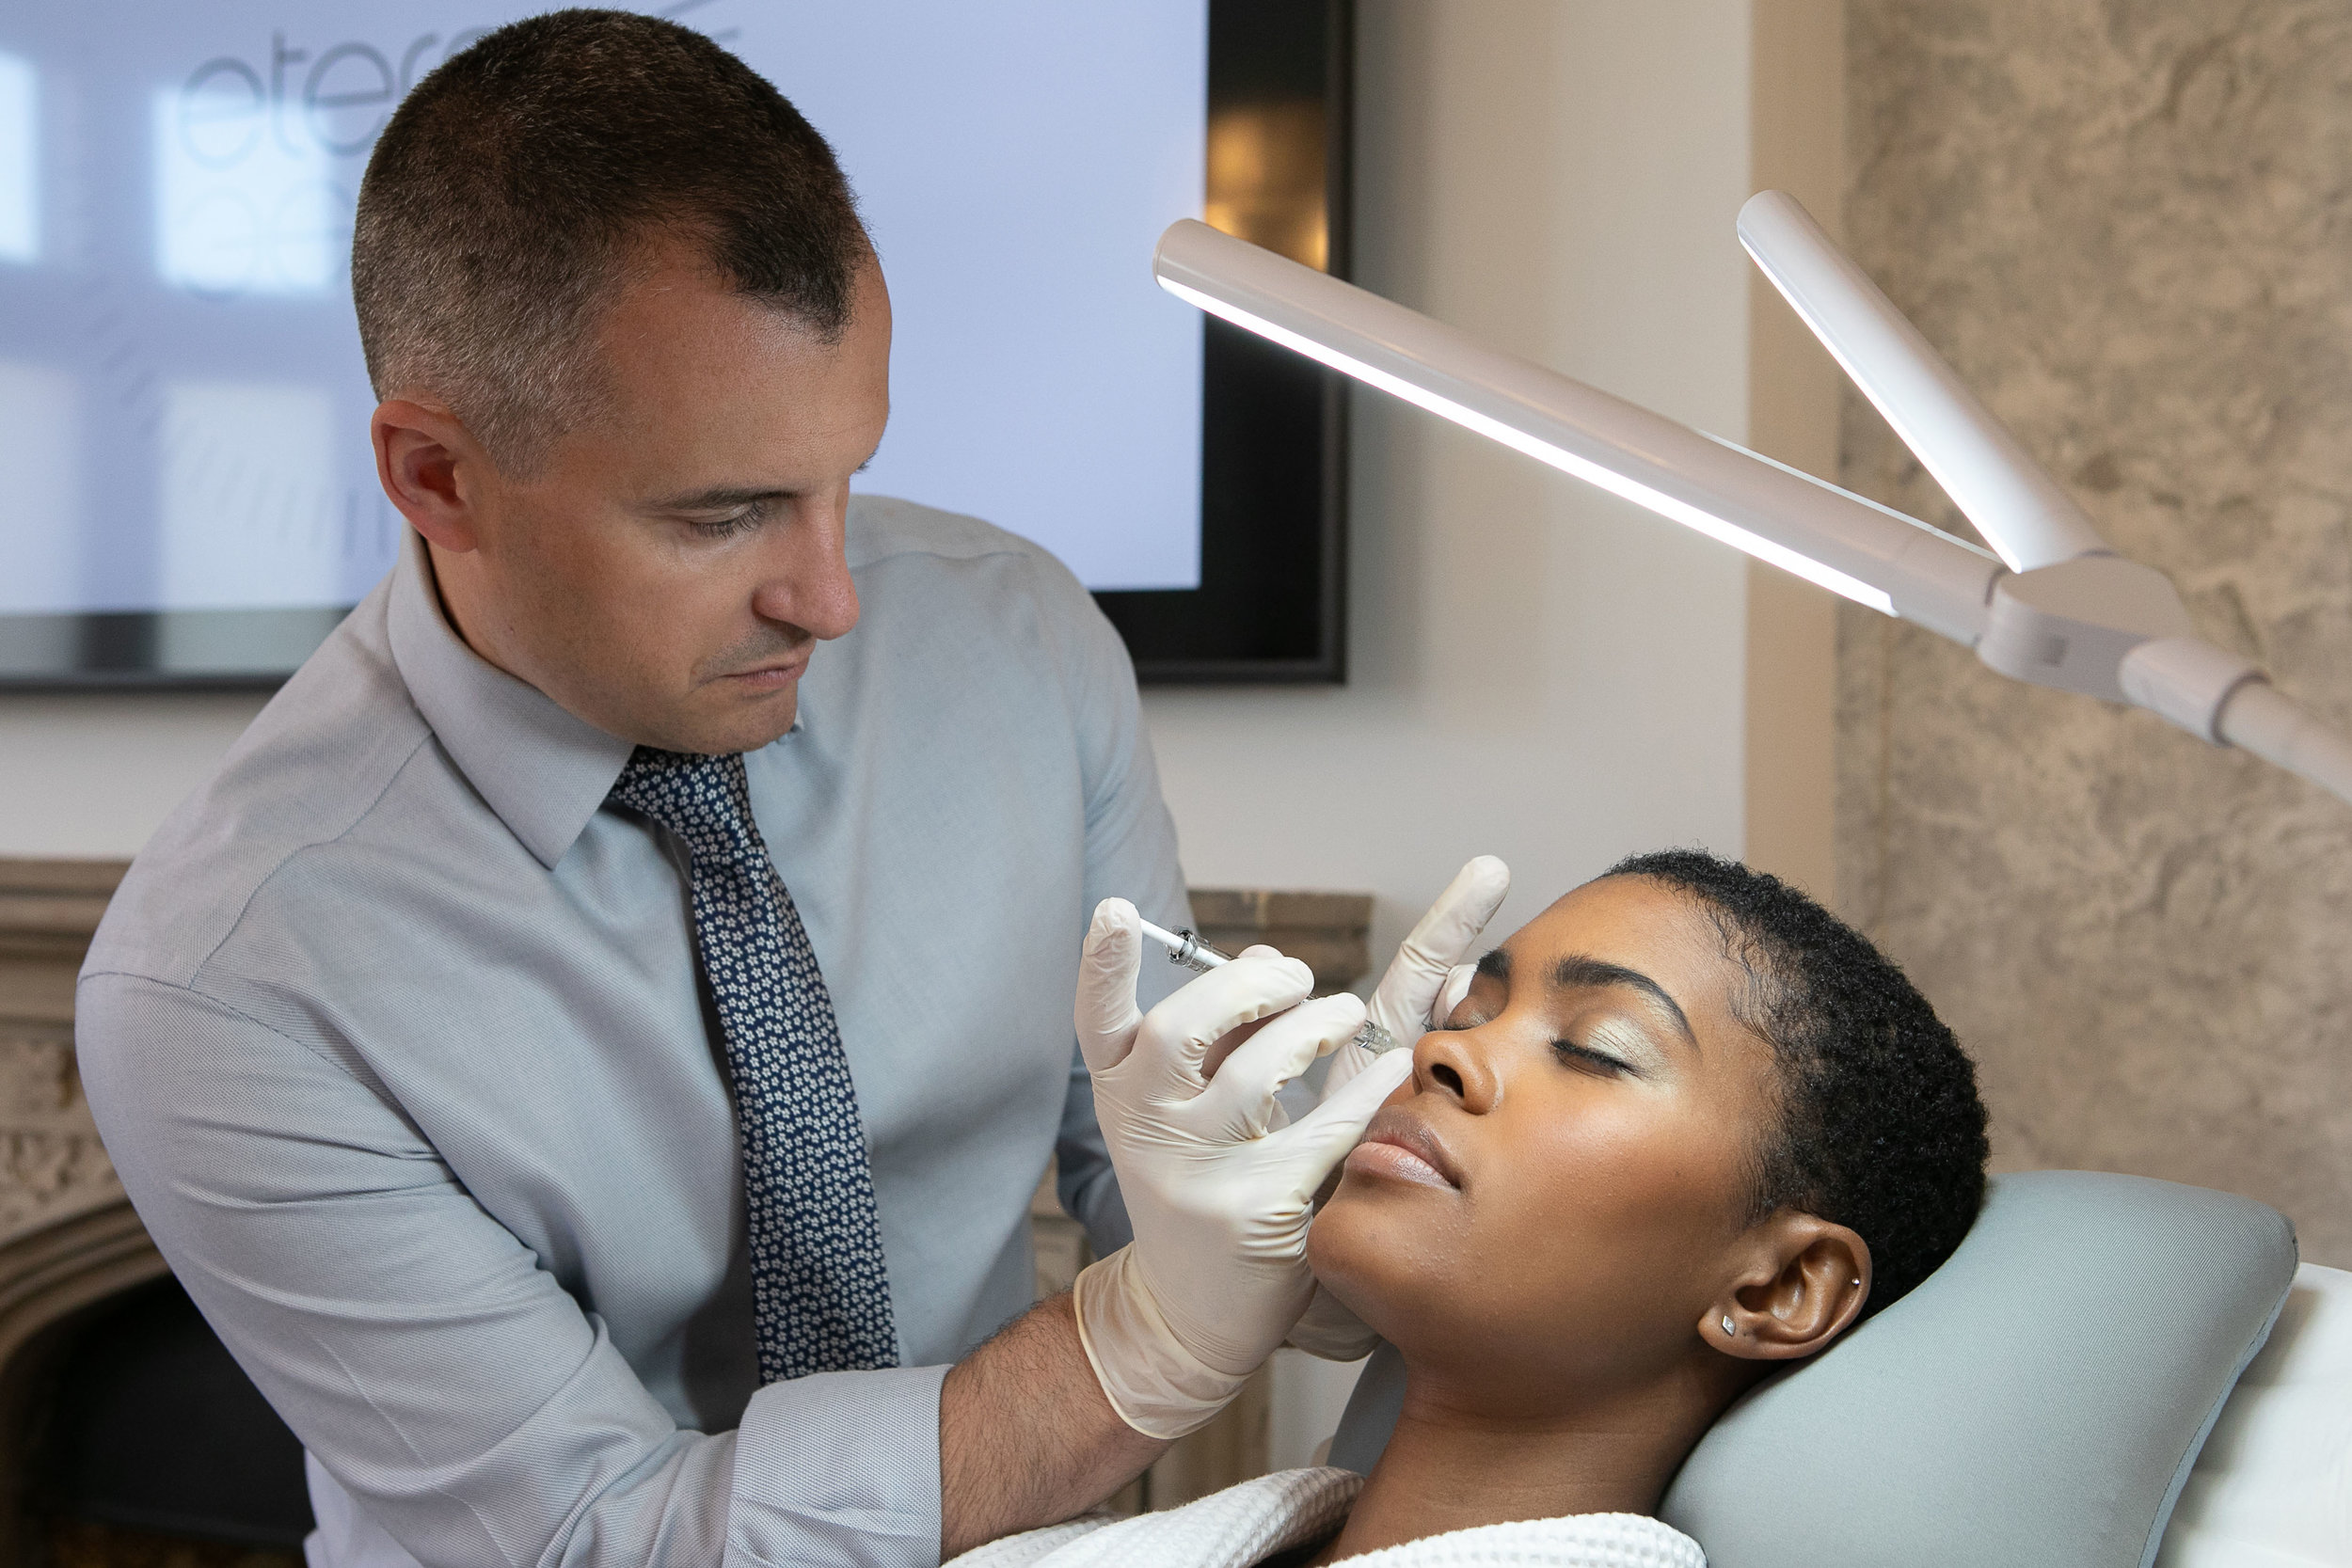 key treatment areas - Platelet Rich Plasma treatments target hair loss, stretch marks, acne, post acne scars, pigmentation, dark circles, saggy and loose skin, tired and aged skin, sun damage and scars.